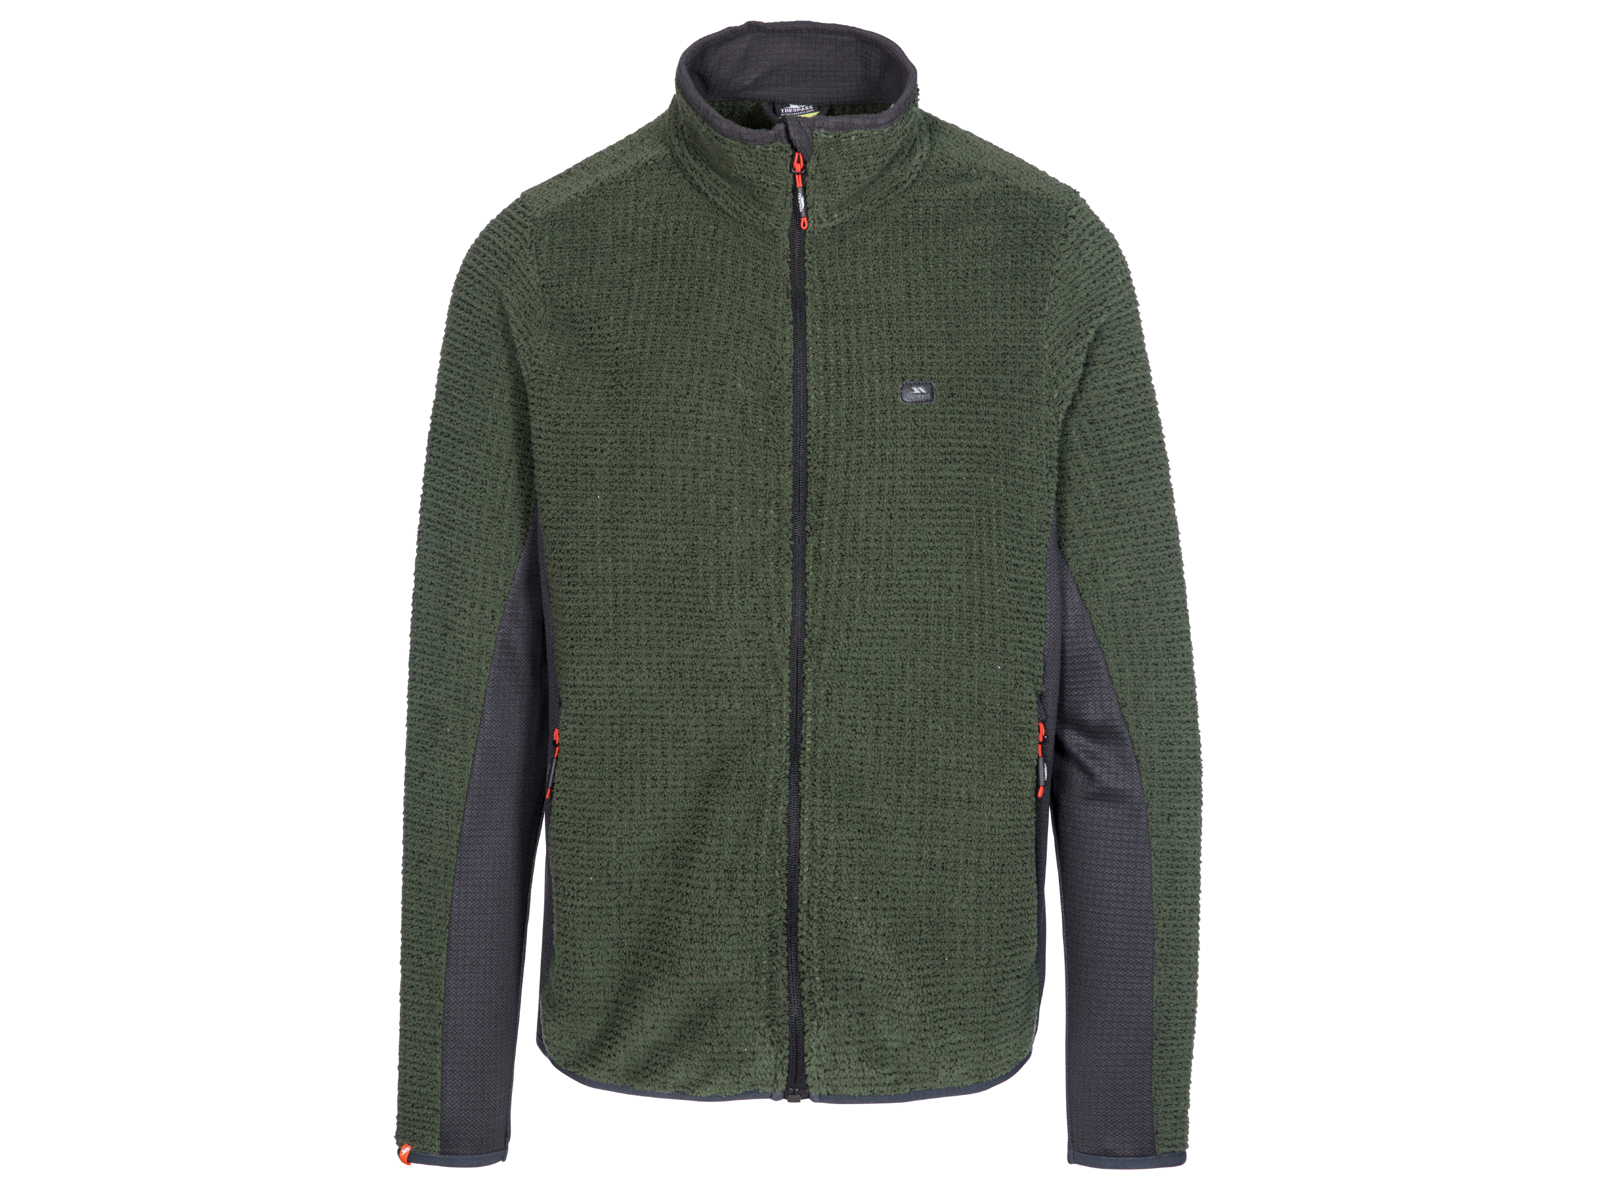 Trespass Templetonpeck Fleece jakke Grøn (DKK 399,00)